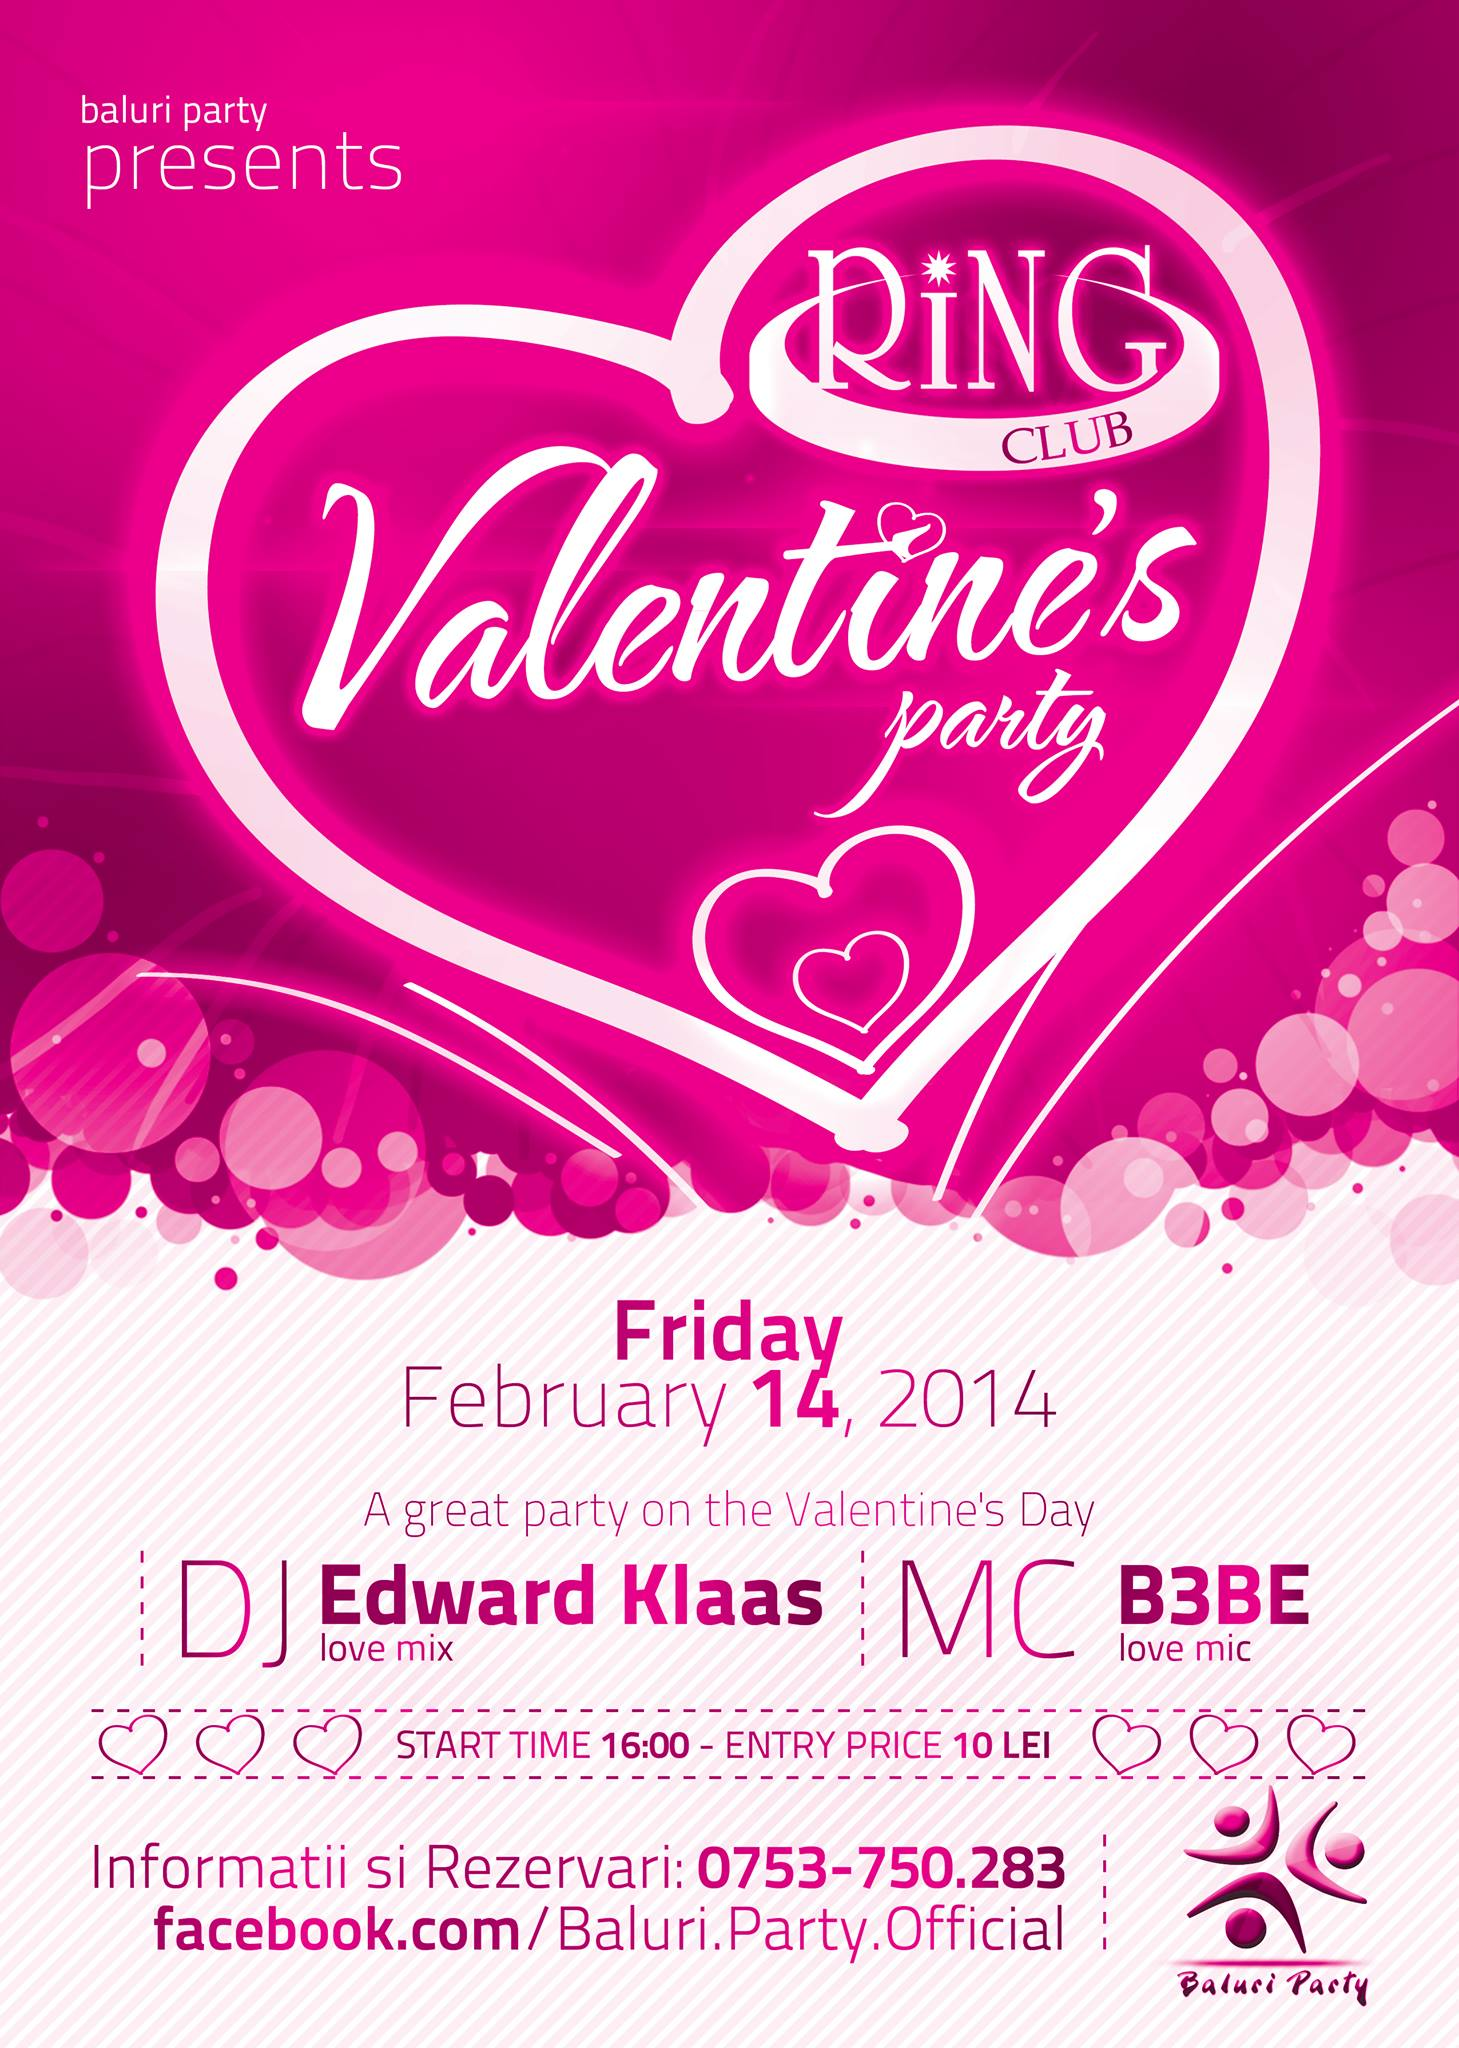 Valentine's Party @ Club Ring